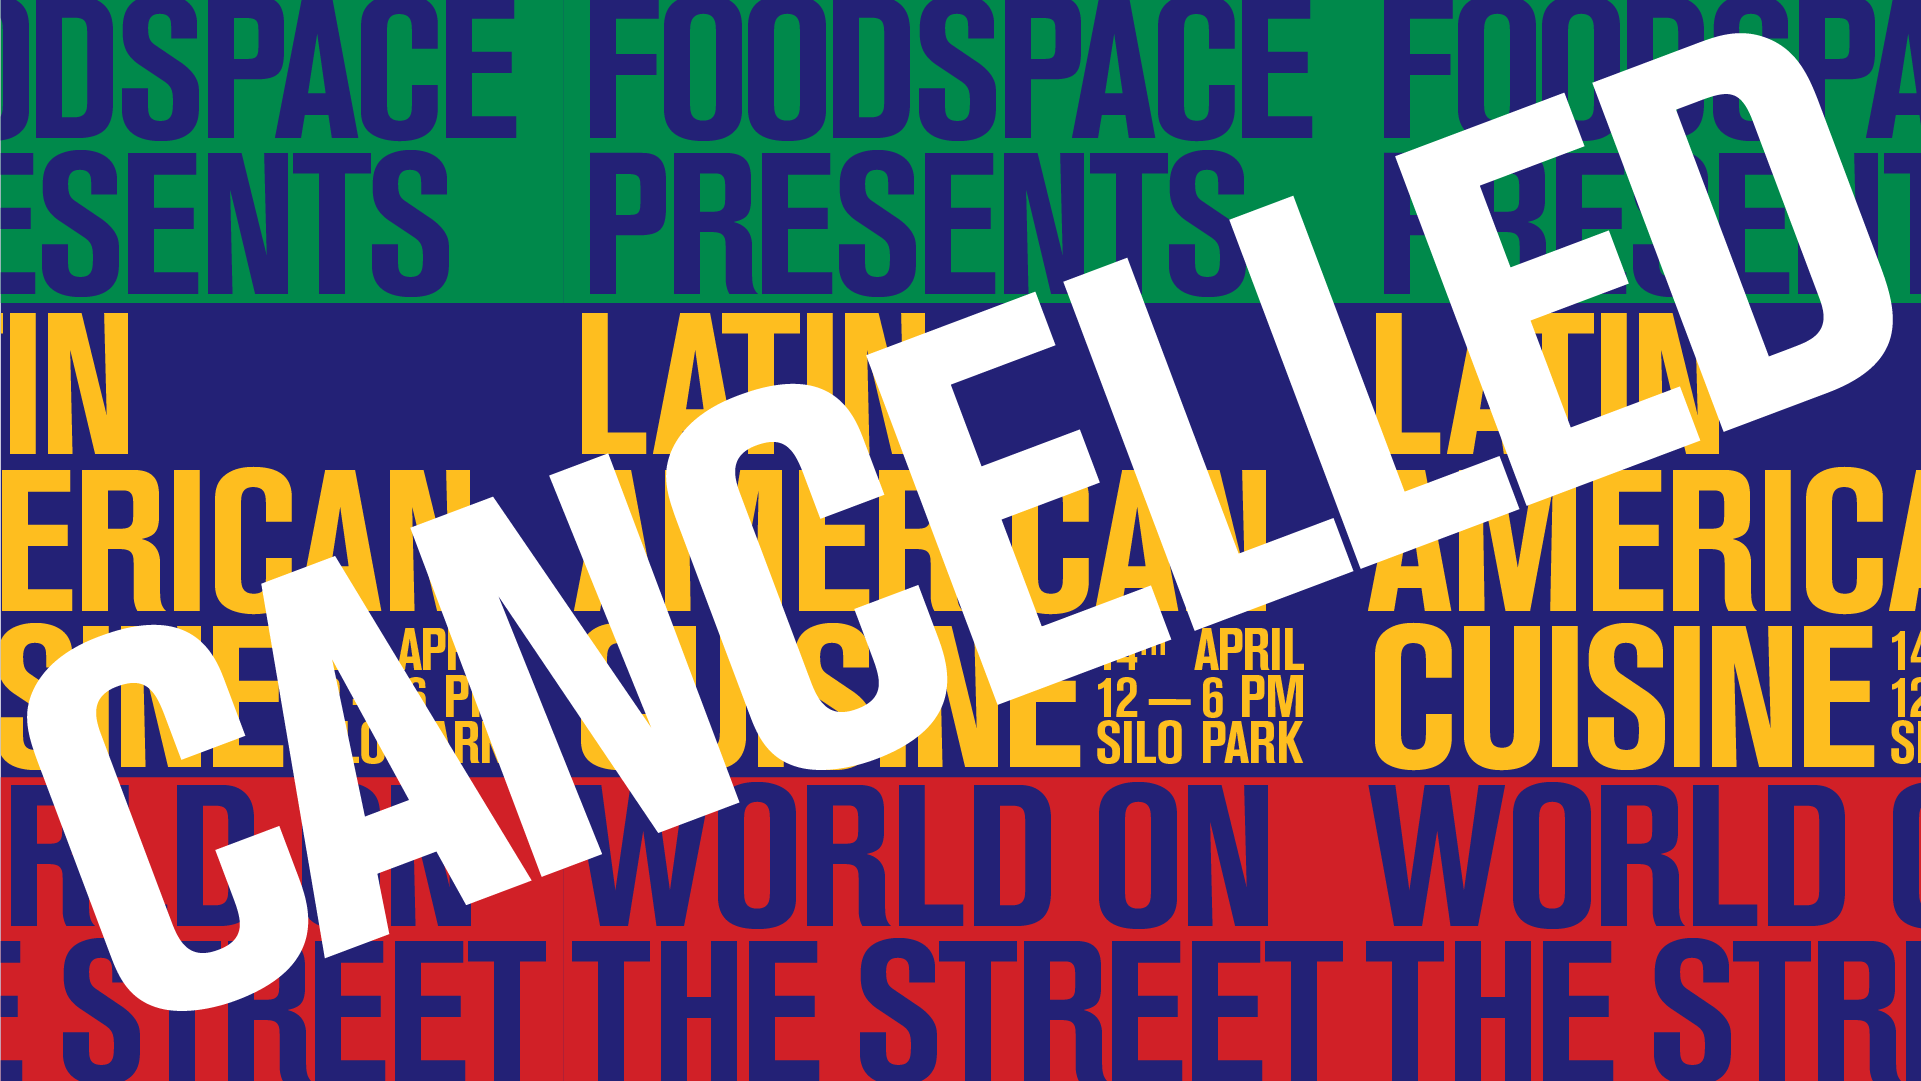 LatinAmerica_FB Event Image_Cancelled.png